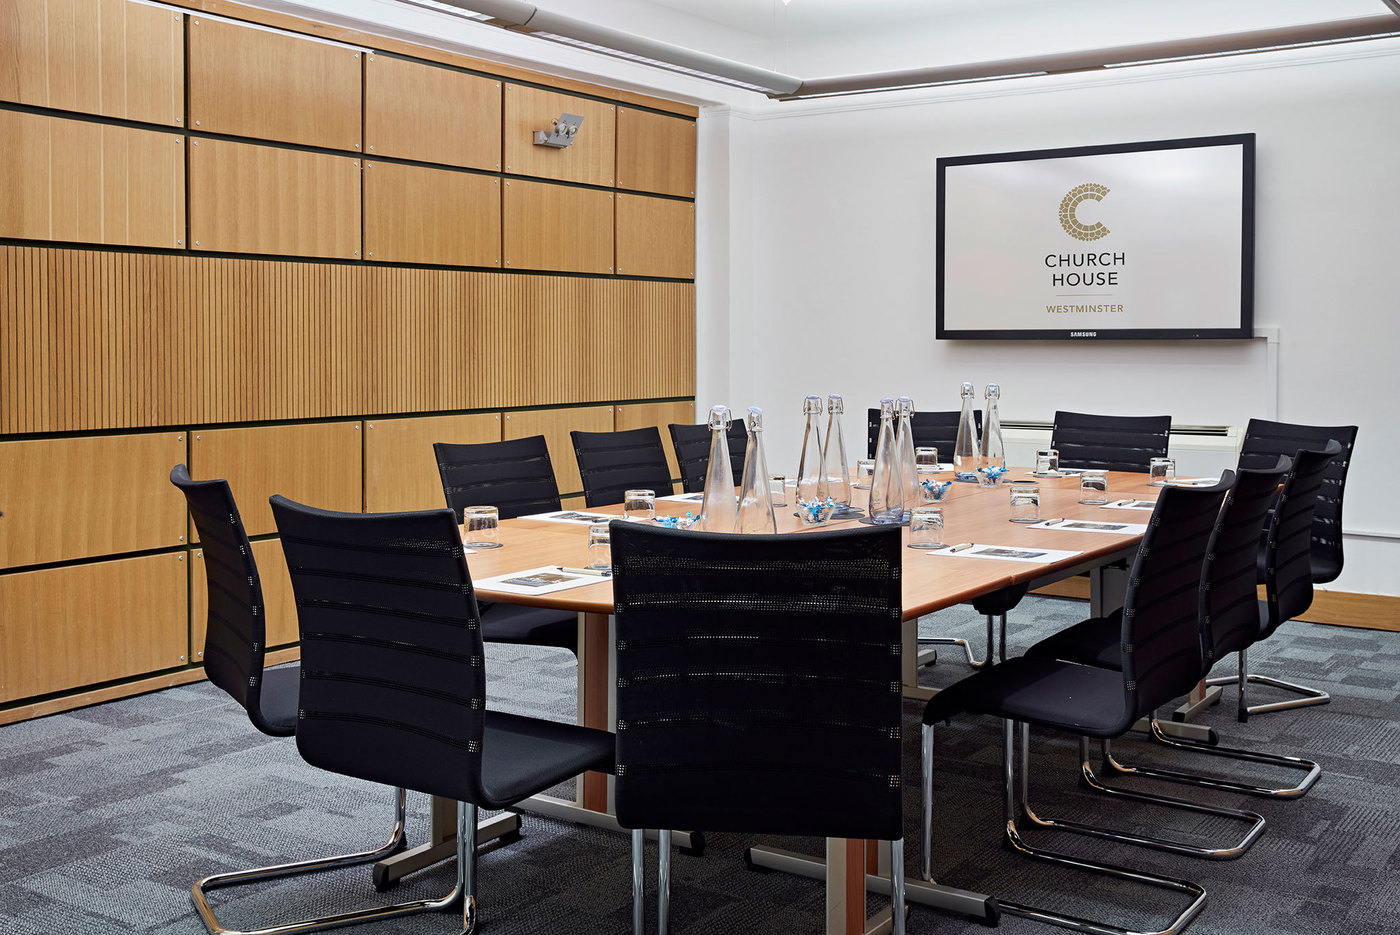 X large 1511958475 1506688076 coggan room boardroom header church house conference centre london